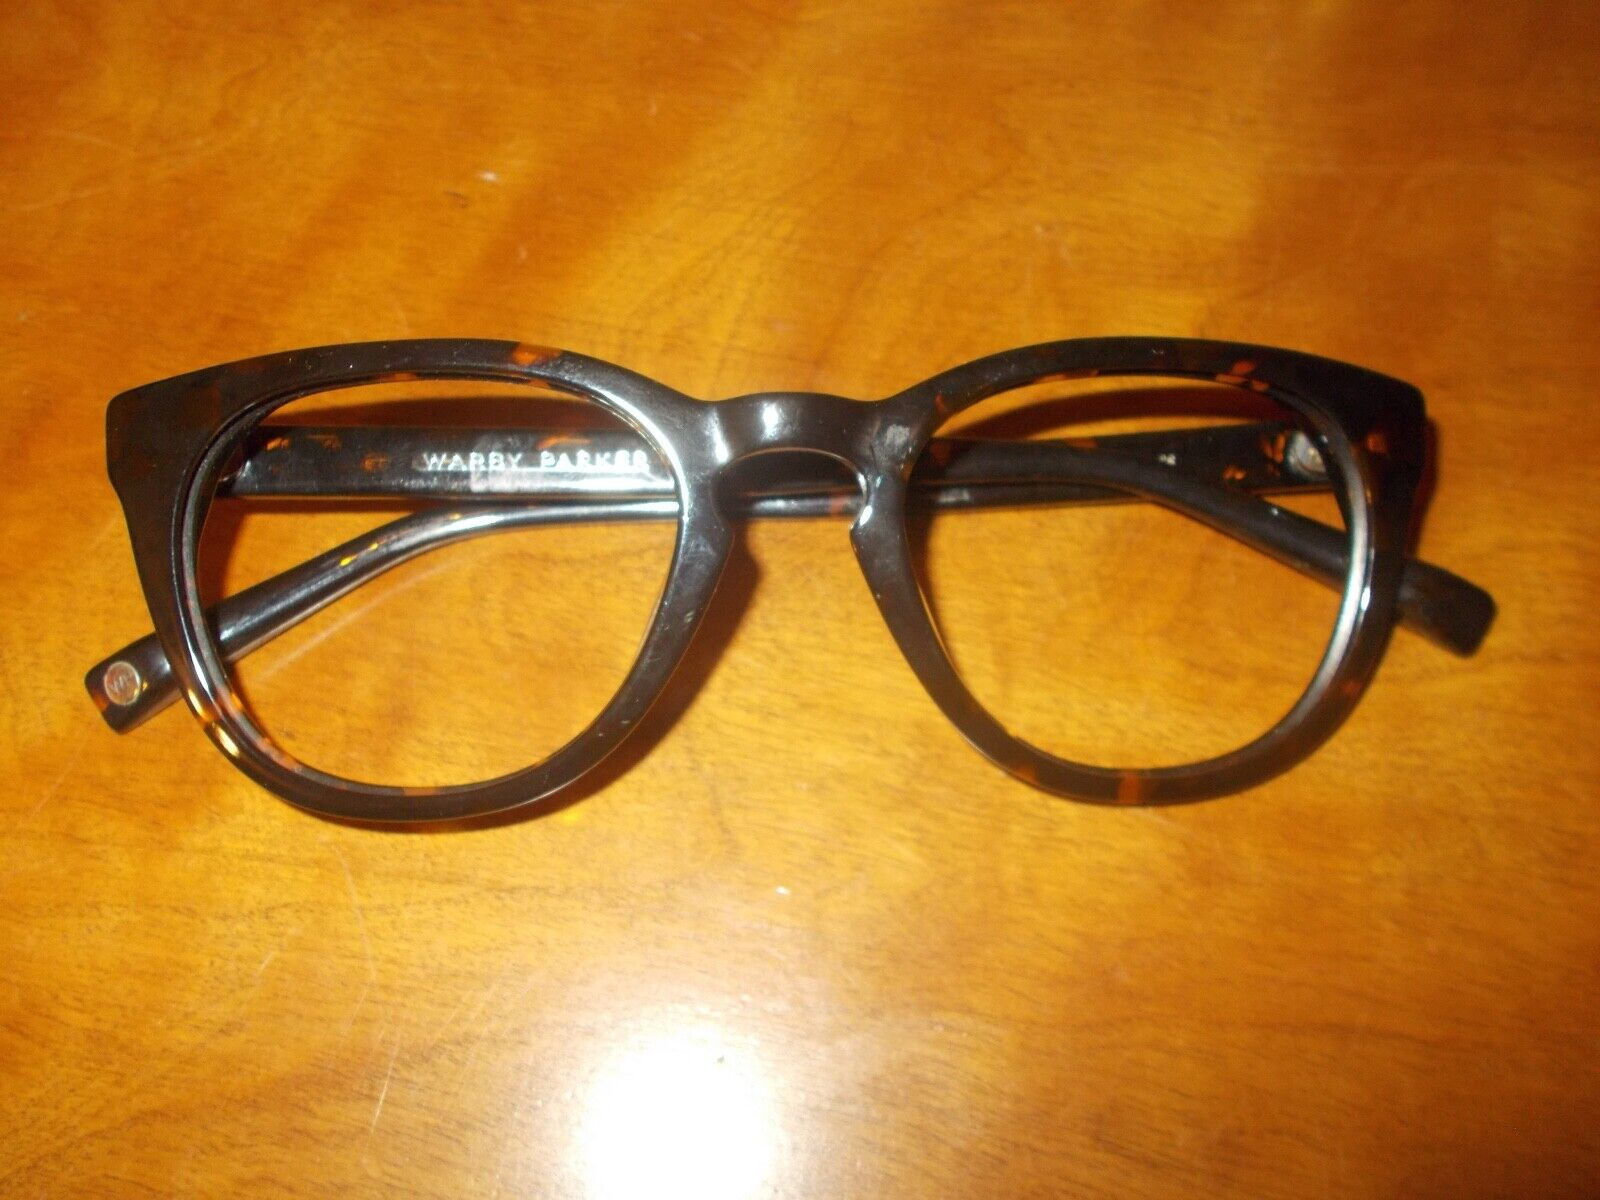 Warby Parker Ormsby 200 Tortoise Frame Sunglasses - image 8